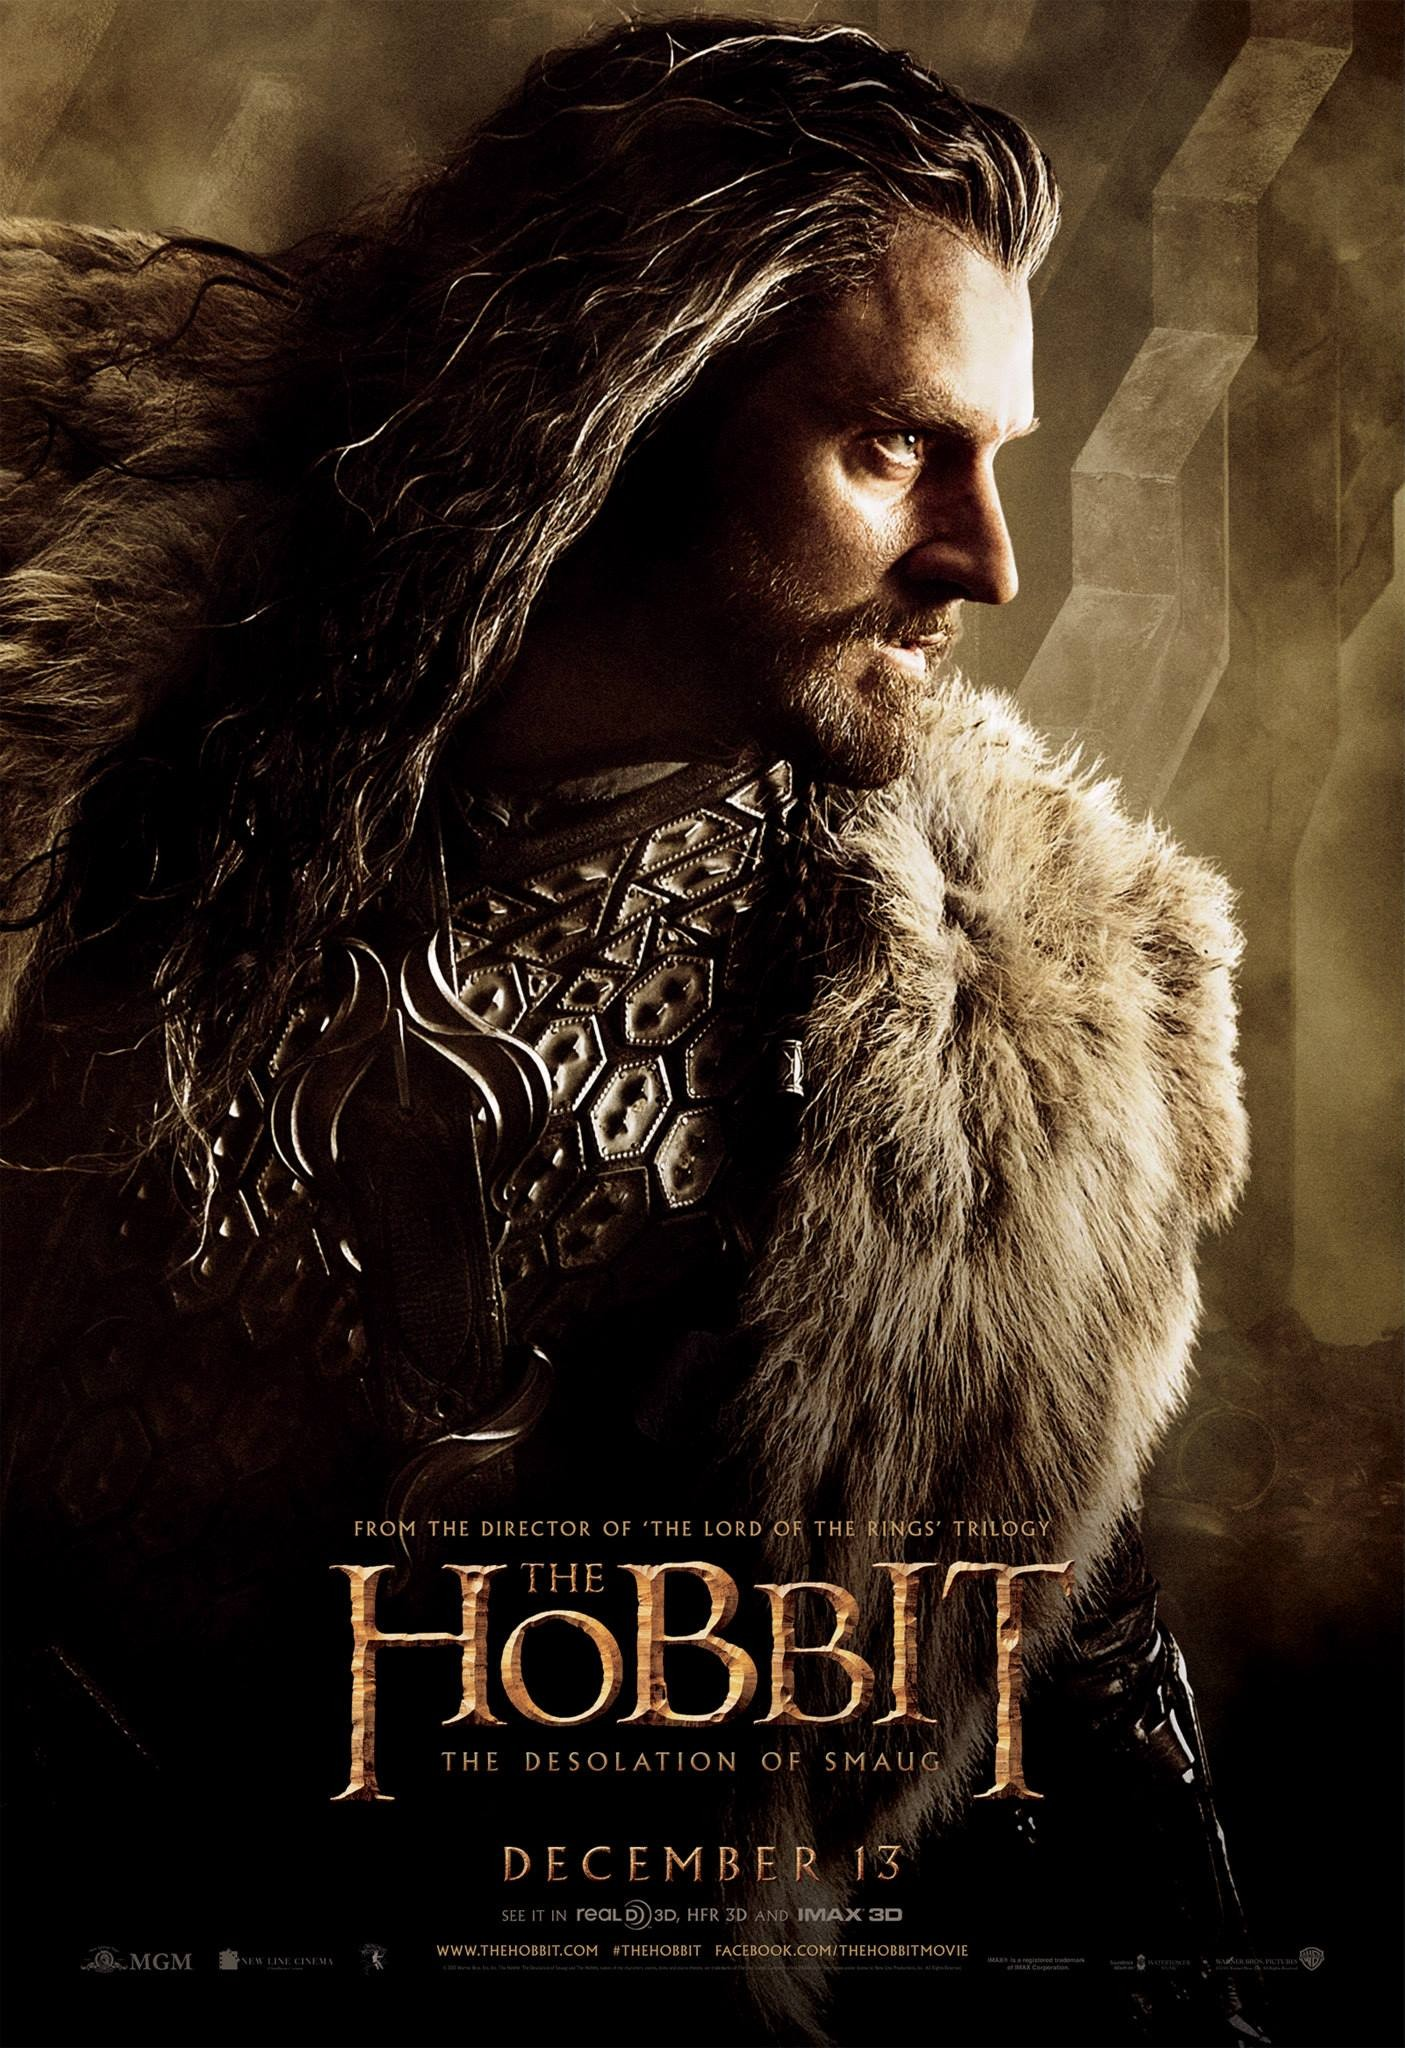 The Hobbit The Desolation of Smaug-Official Poster Banner PROMO POSTER XXLG-04NOVEMBRO2013-05